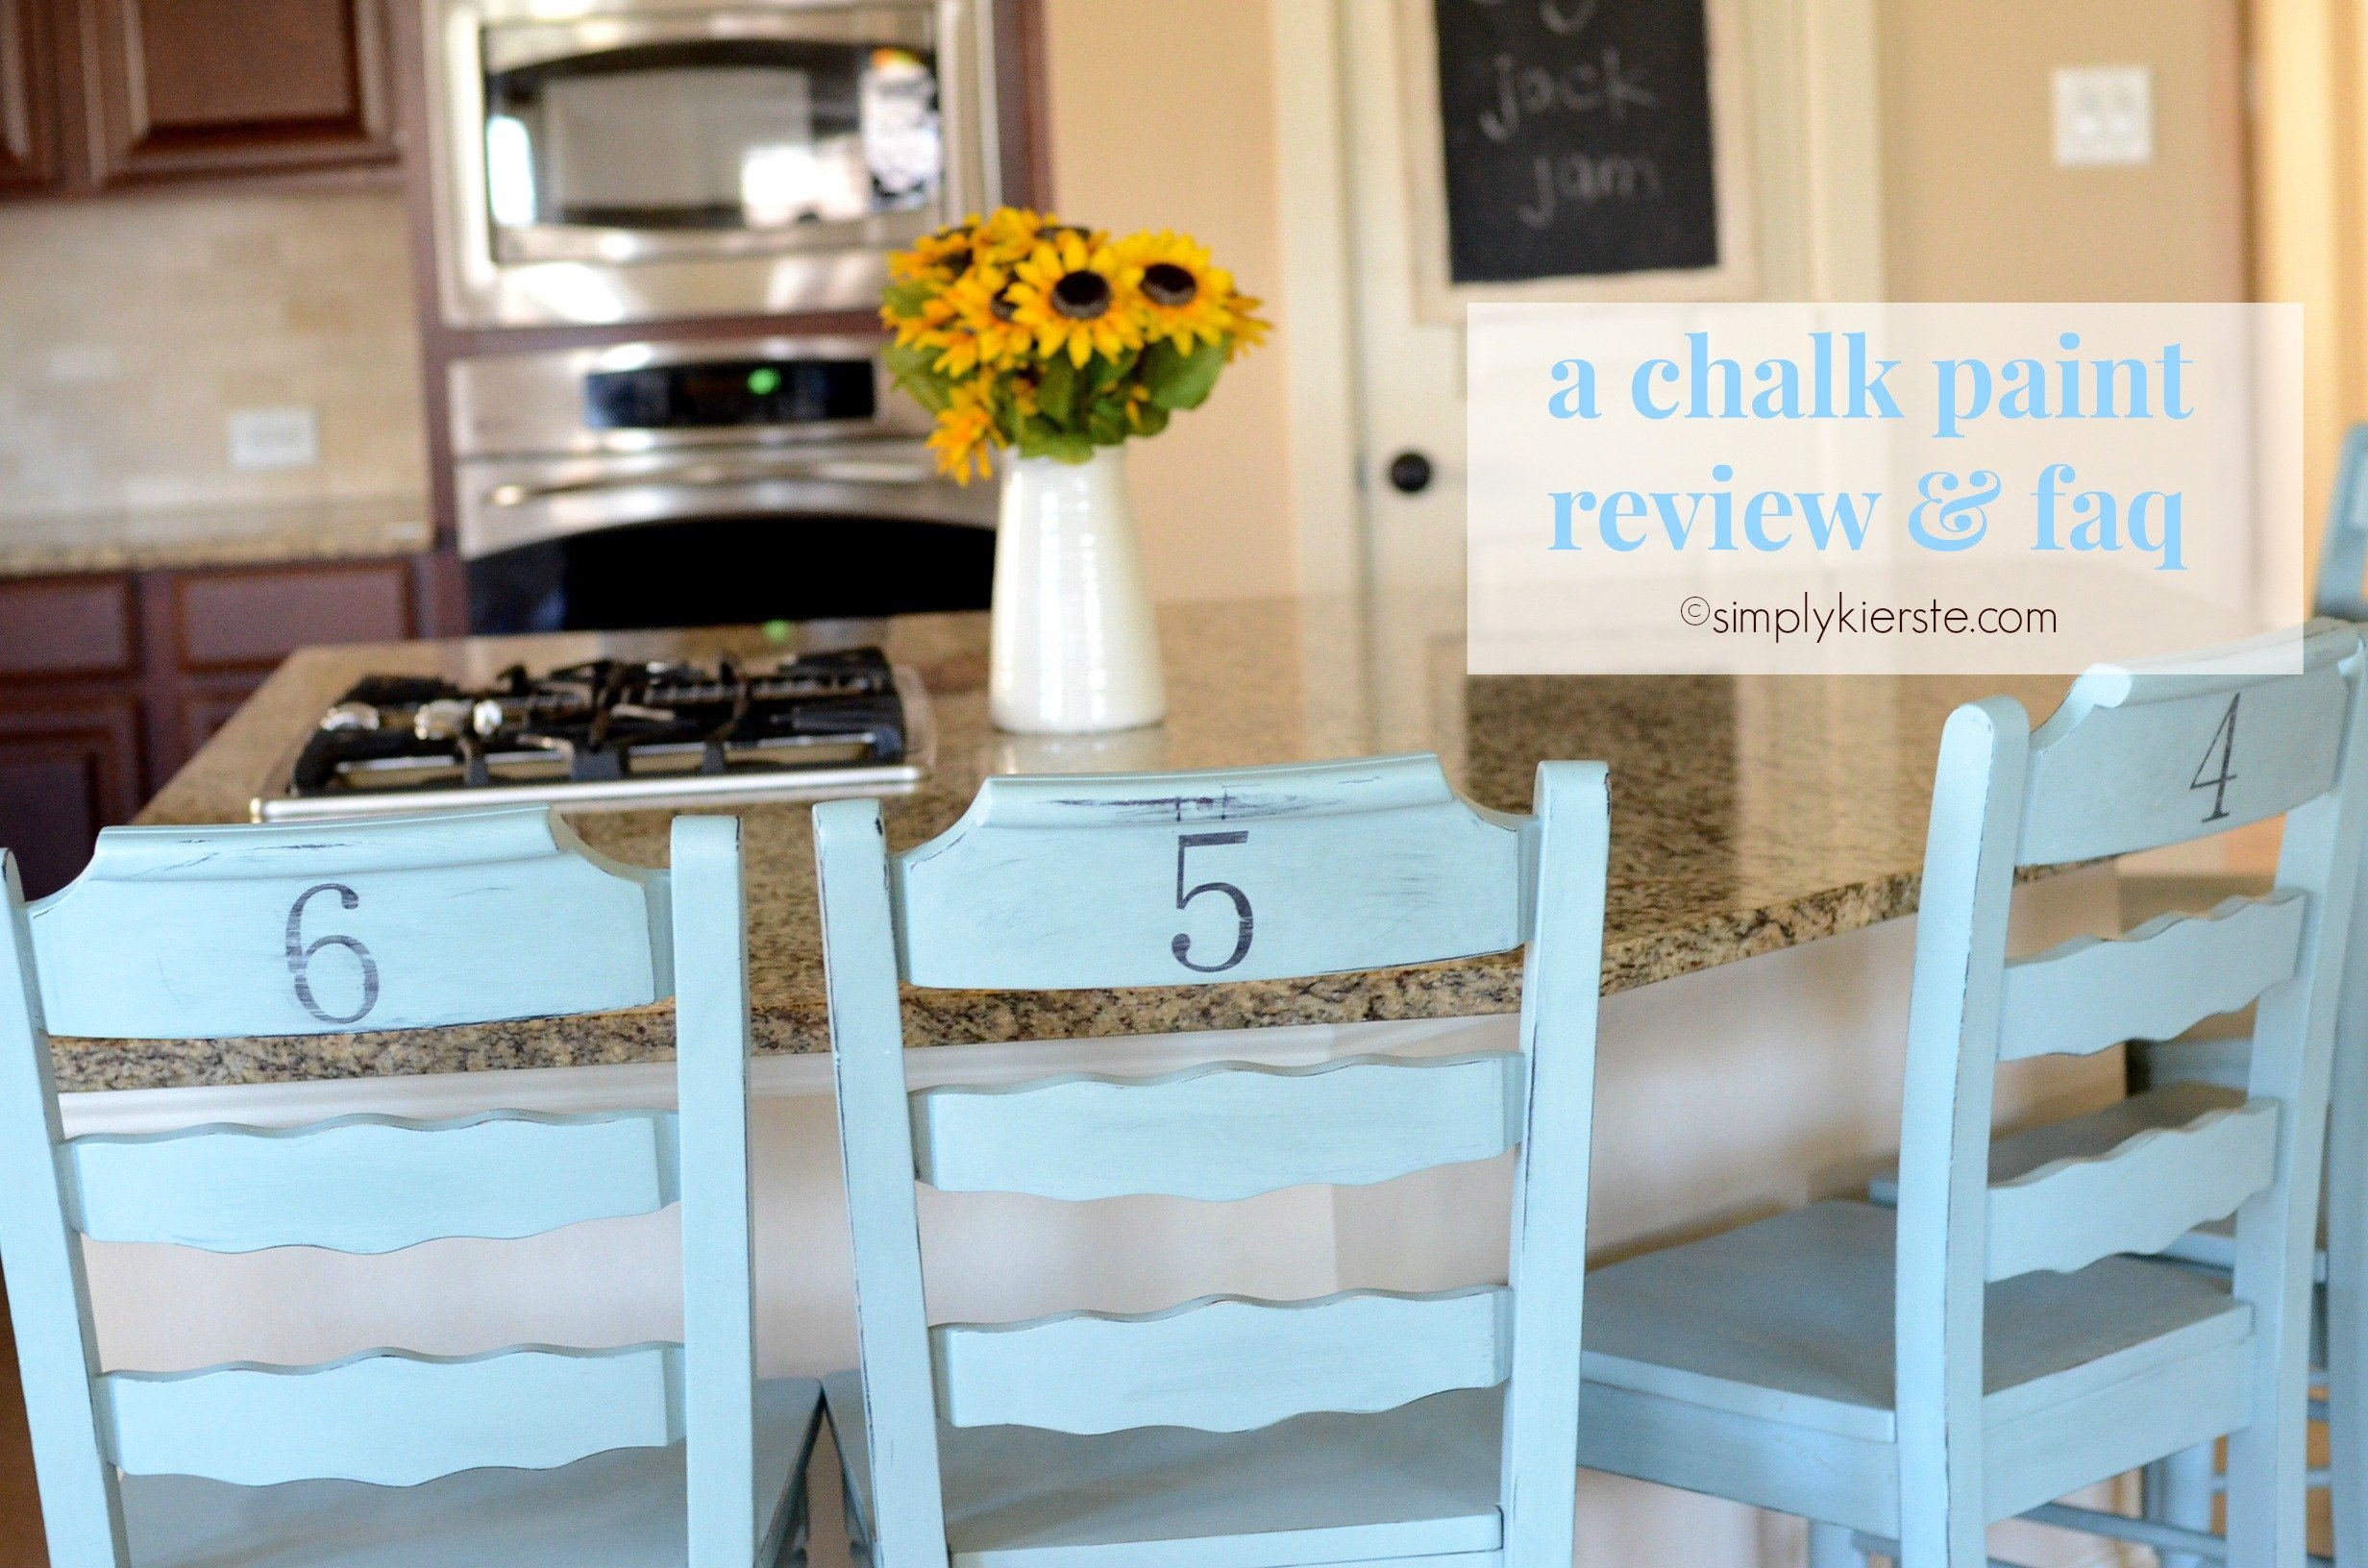 A Chalk Paint Review & FAQ | simplykierste.com